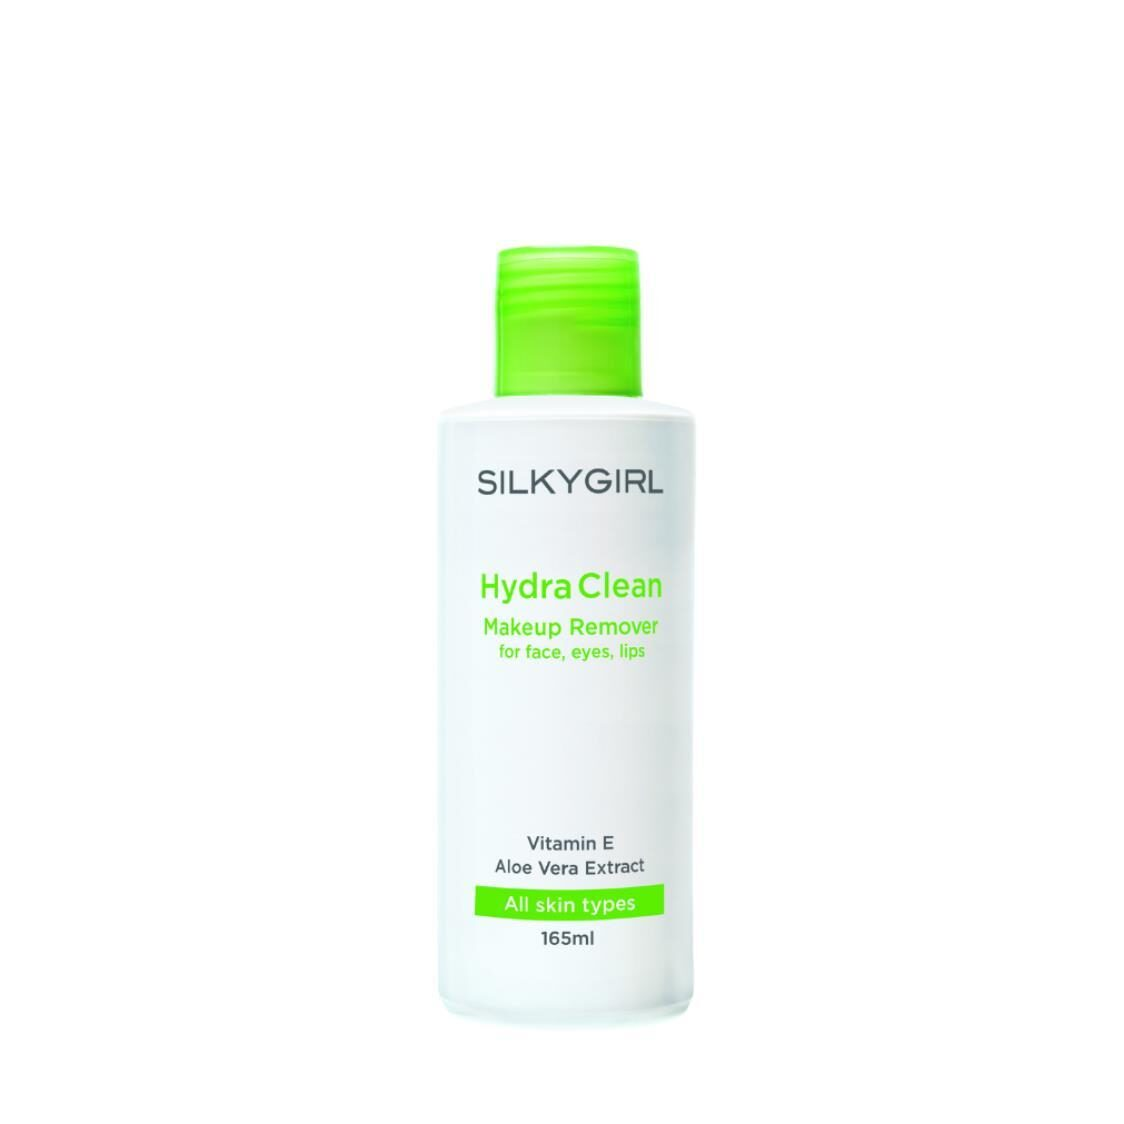 Hydra Clean Makeup Remover